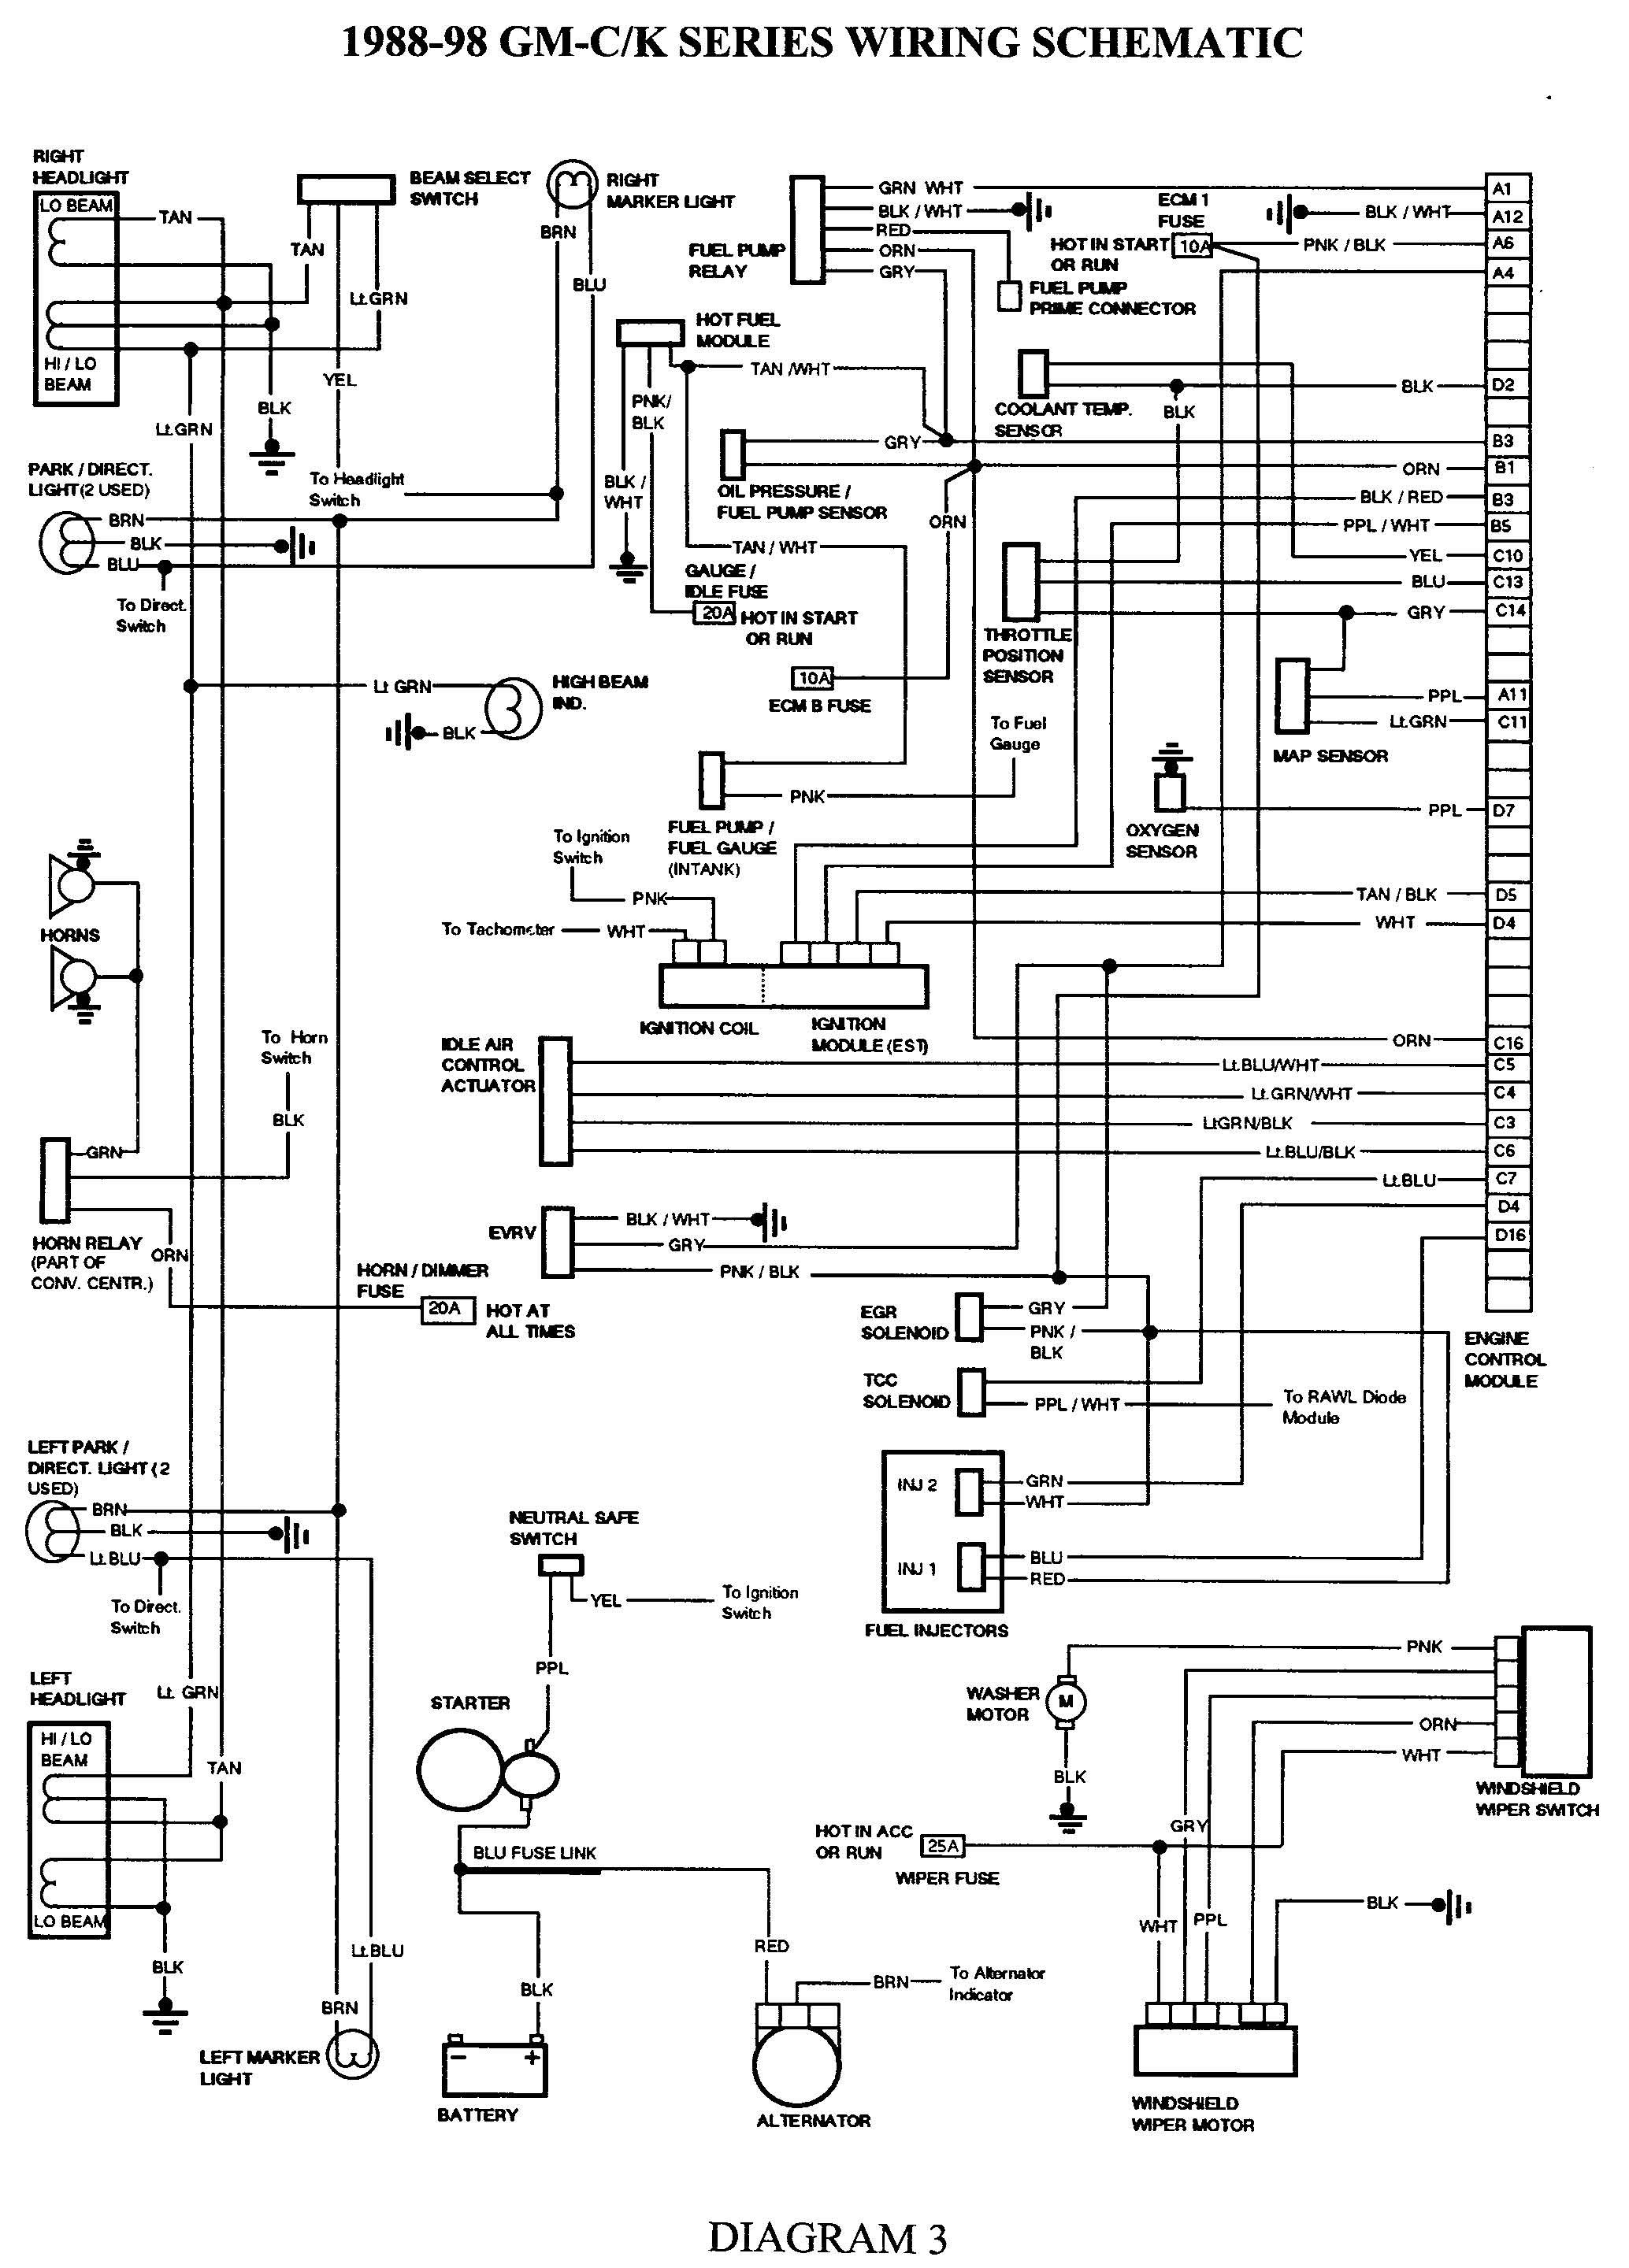 b2f2e5dbdc07dada83ef514f6d4ce3d4 gmc truck wiring diagrams on gm wiring harness diagram 88 98 kc wiring harness diagram at crackthecode.co